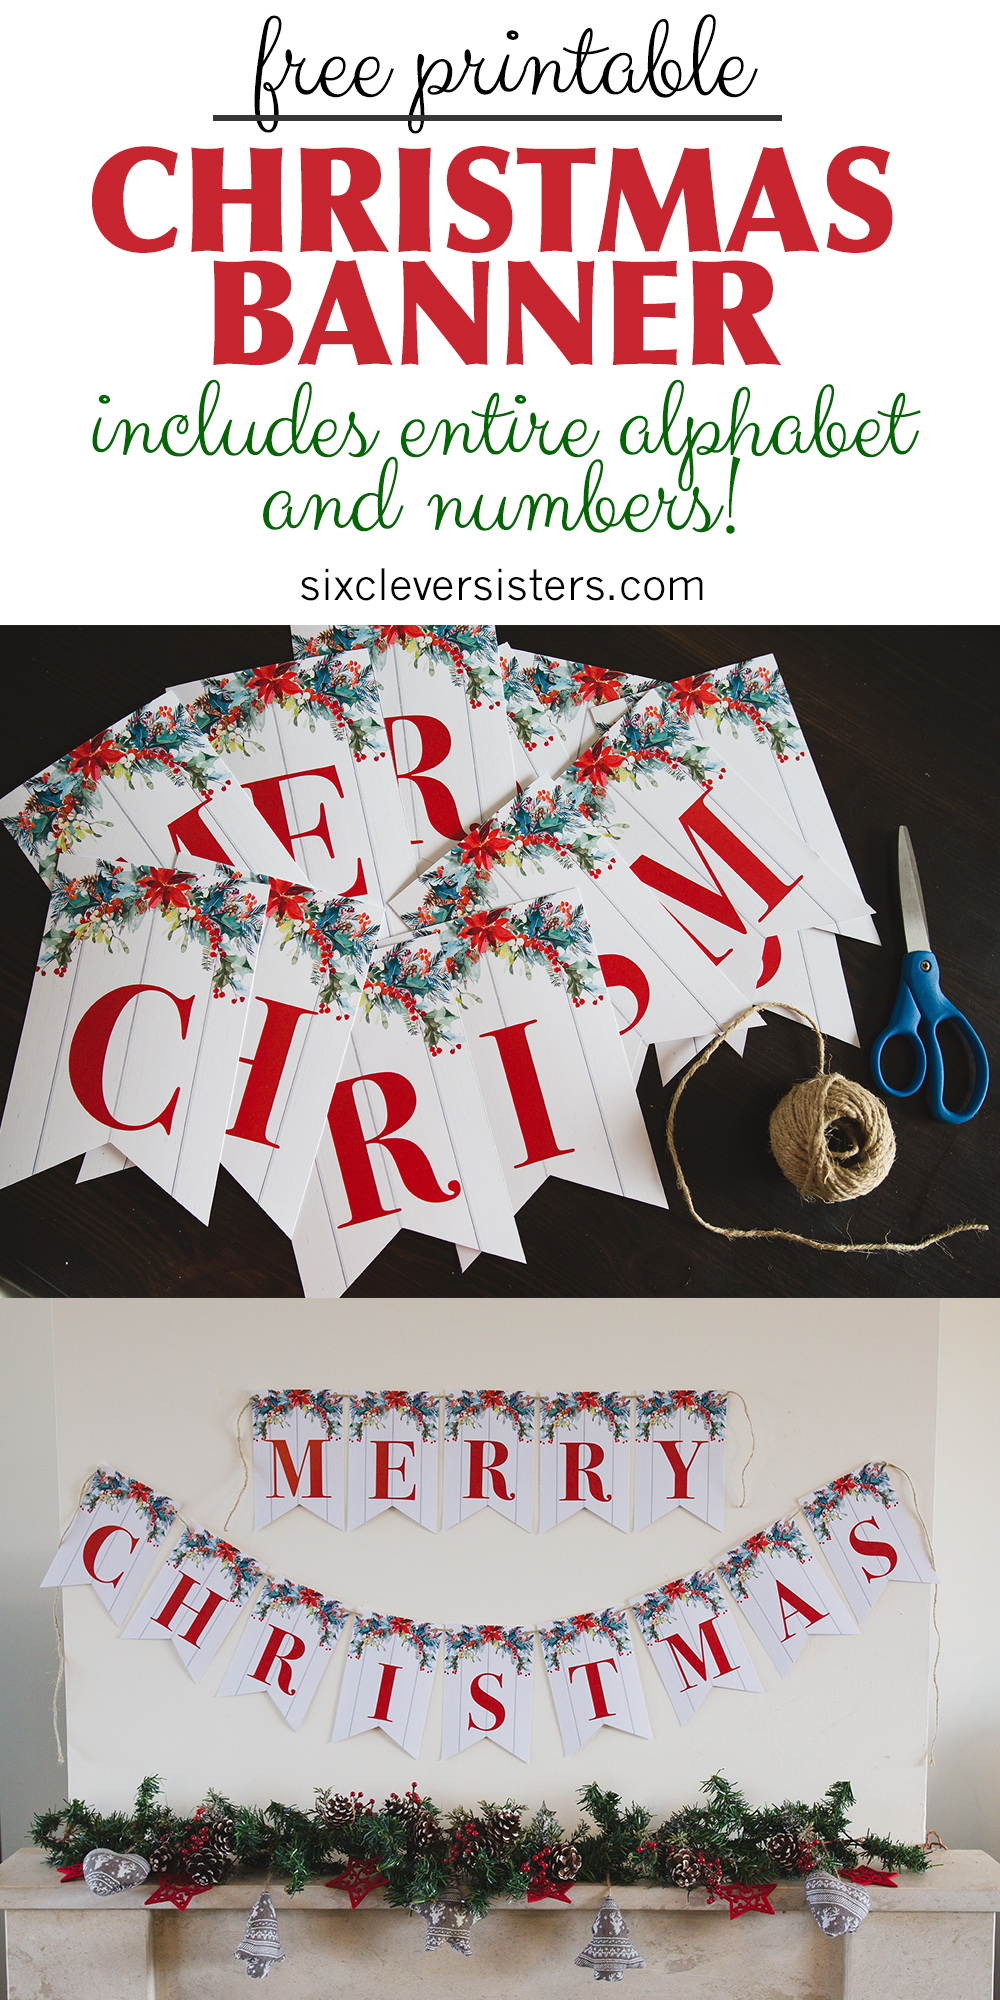 photo about Merry Christmas Banner Printable named Printable Merry Xmas Banner - 6 Sensible Sisters